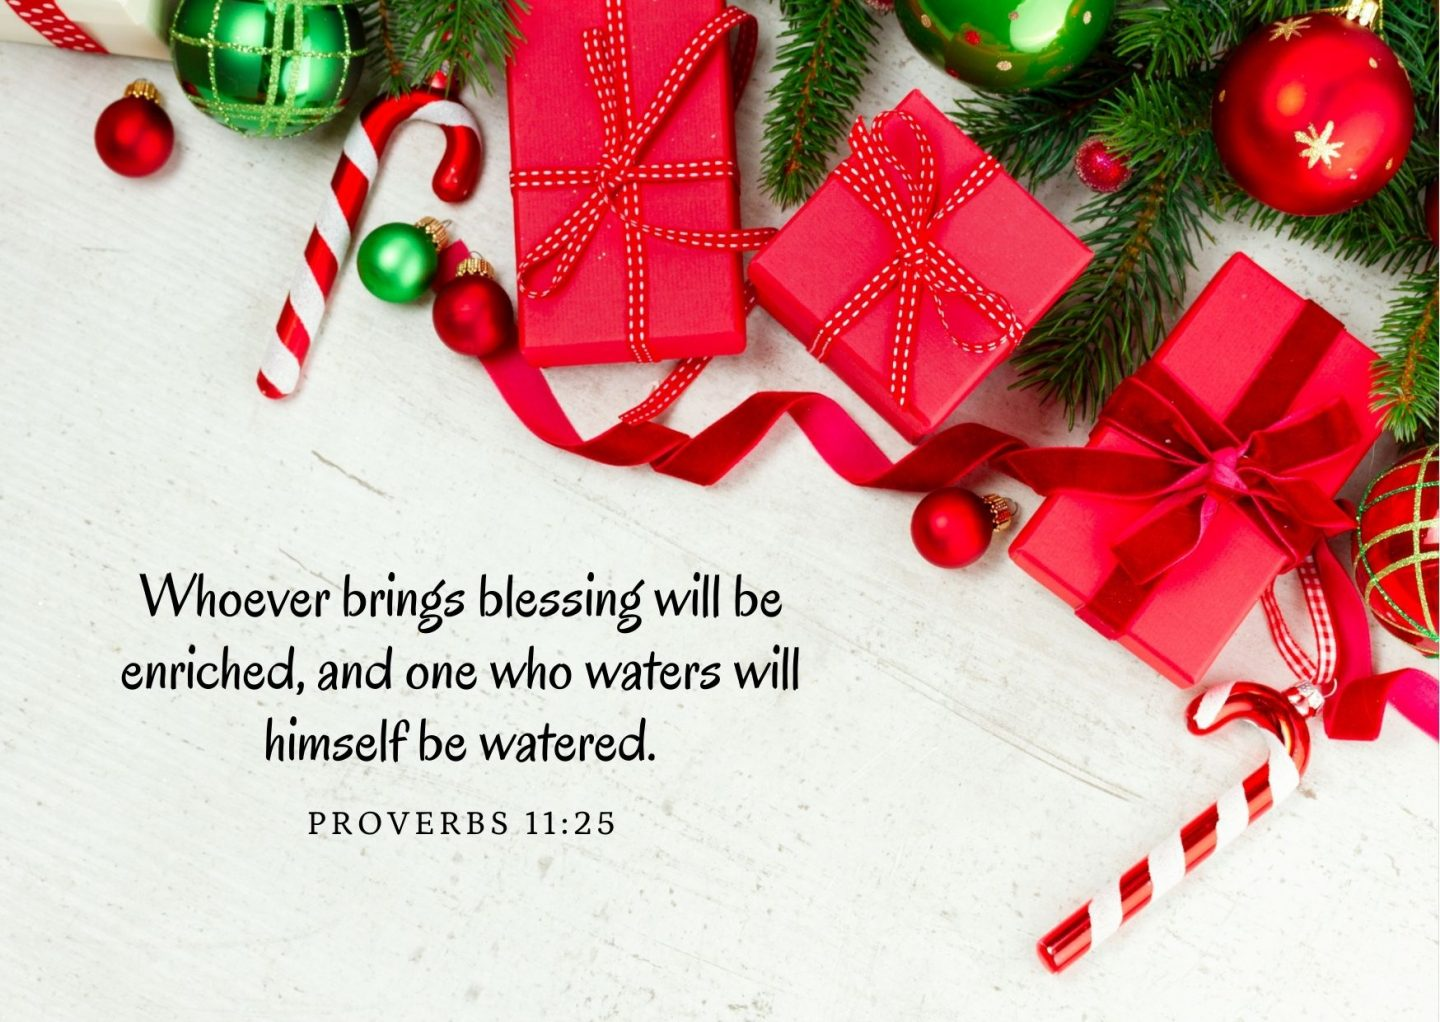 Whoever brings blessing will be enriched, and one who waters will himself be watered. Proverbs 11:25